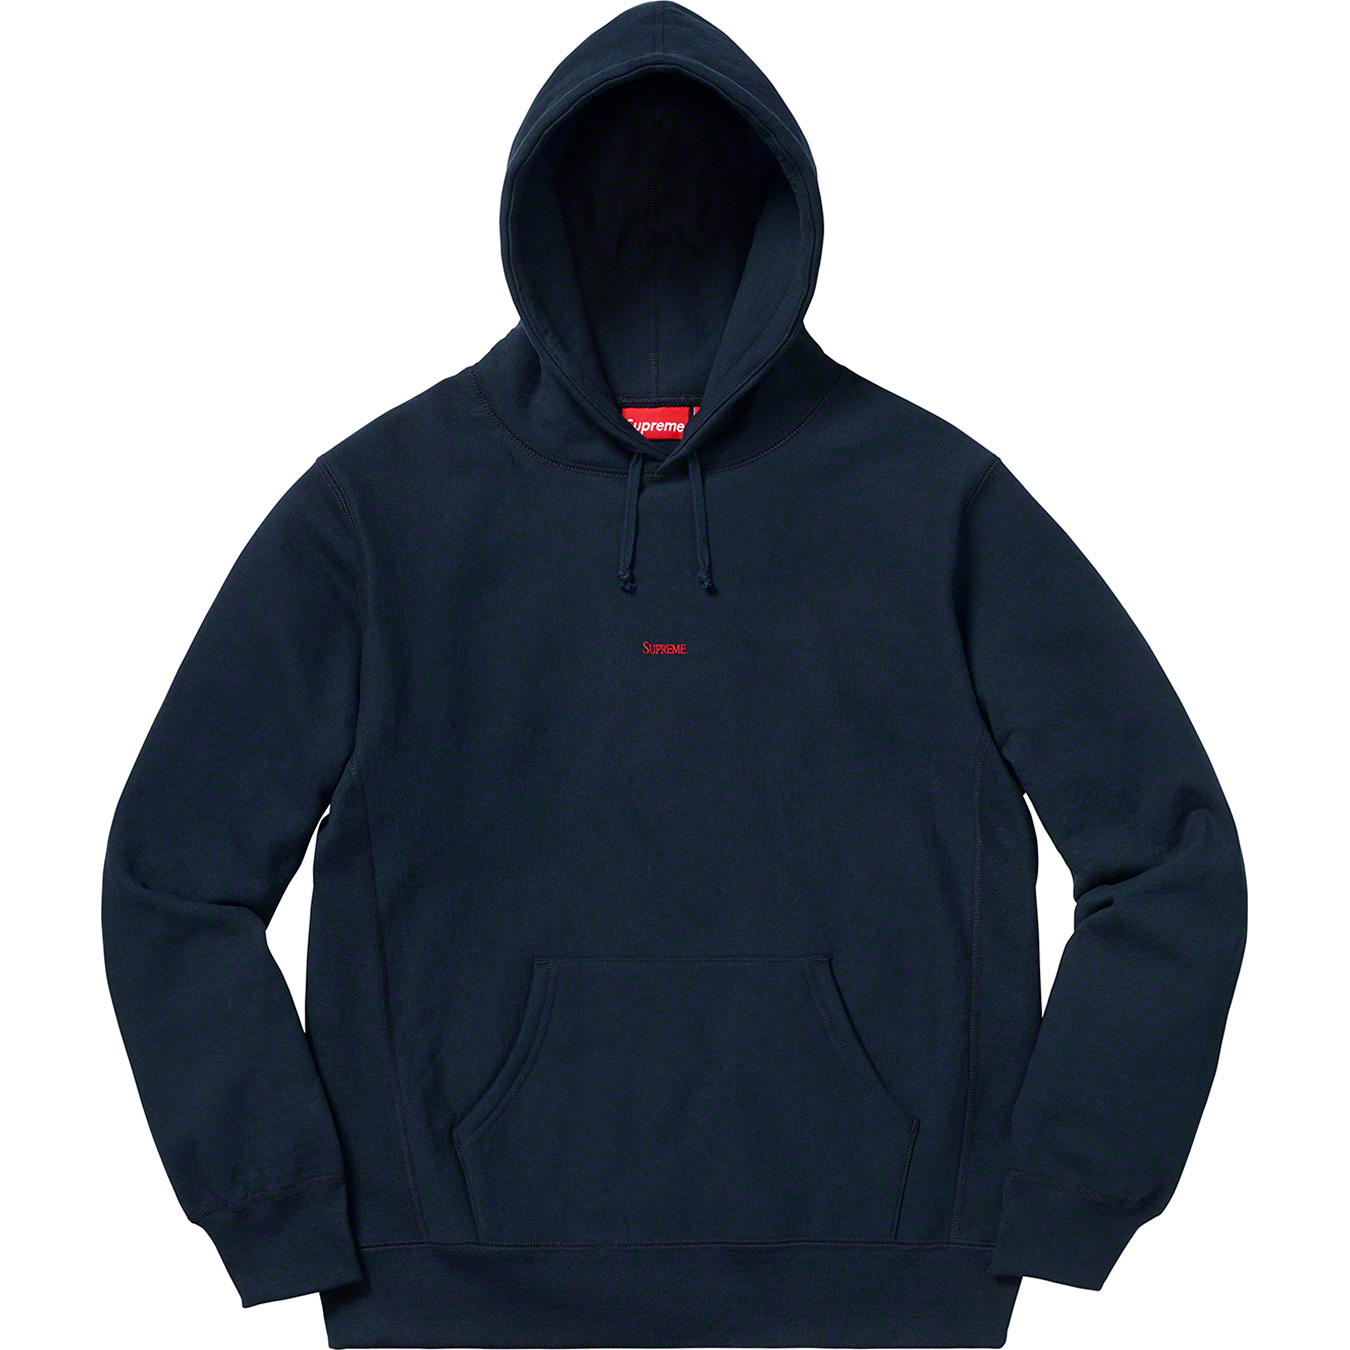 supreme-19aw-19fw-fall-winter-micro-logo-hooded-sweatshirt